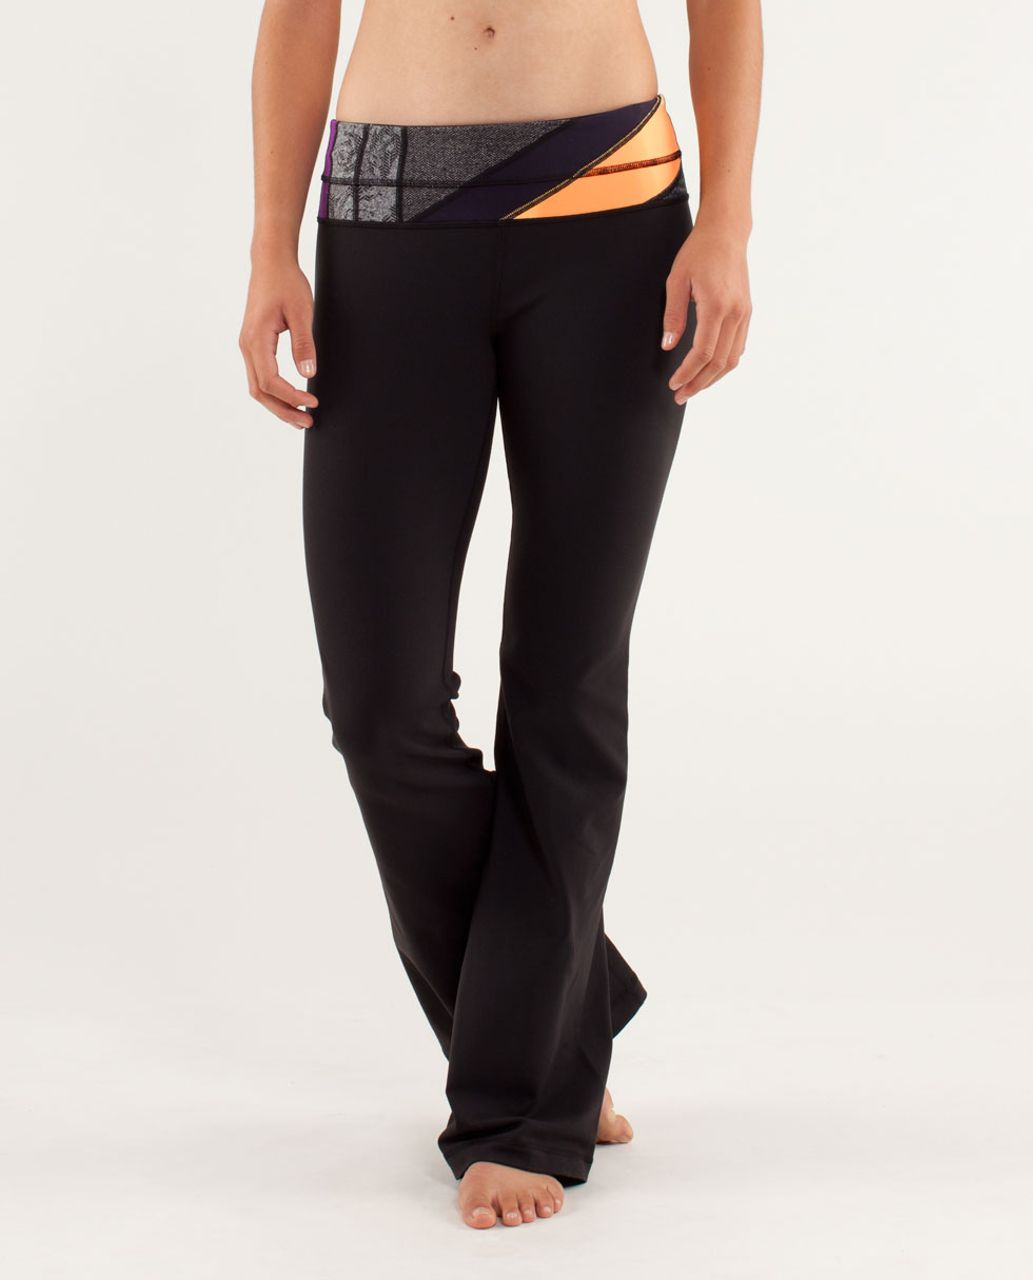 Lululemon Groove Pant *Slim (Regular) - Black /  Quilting Winter 3 /  Quilting Winter 3